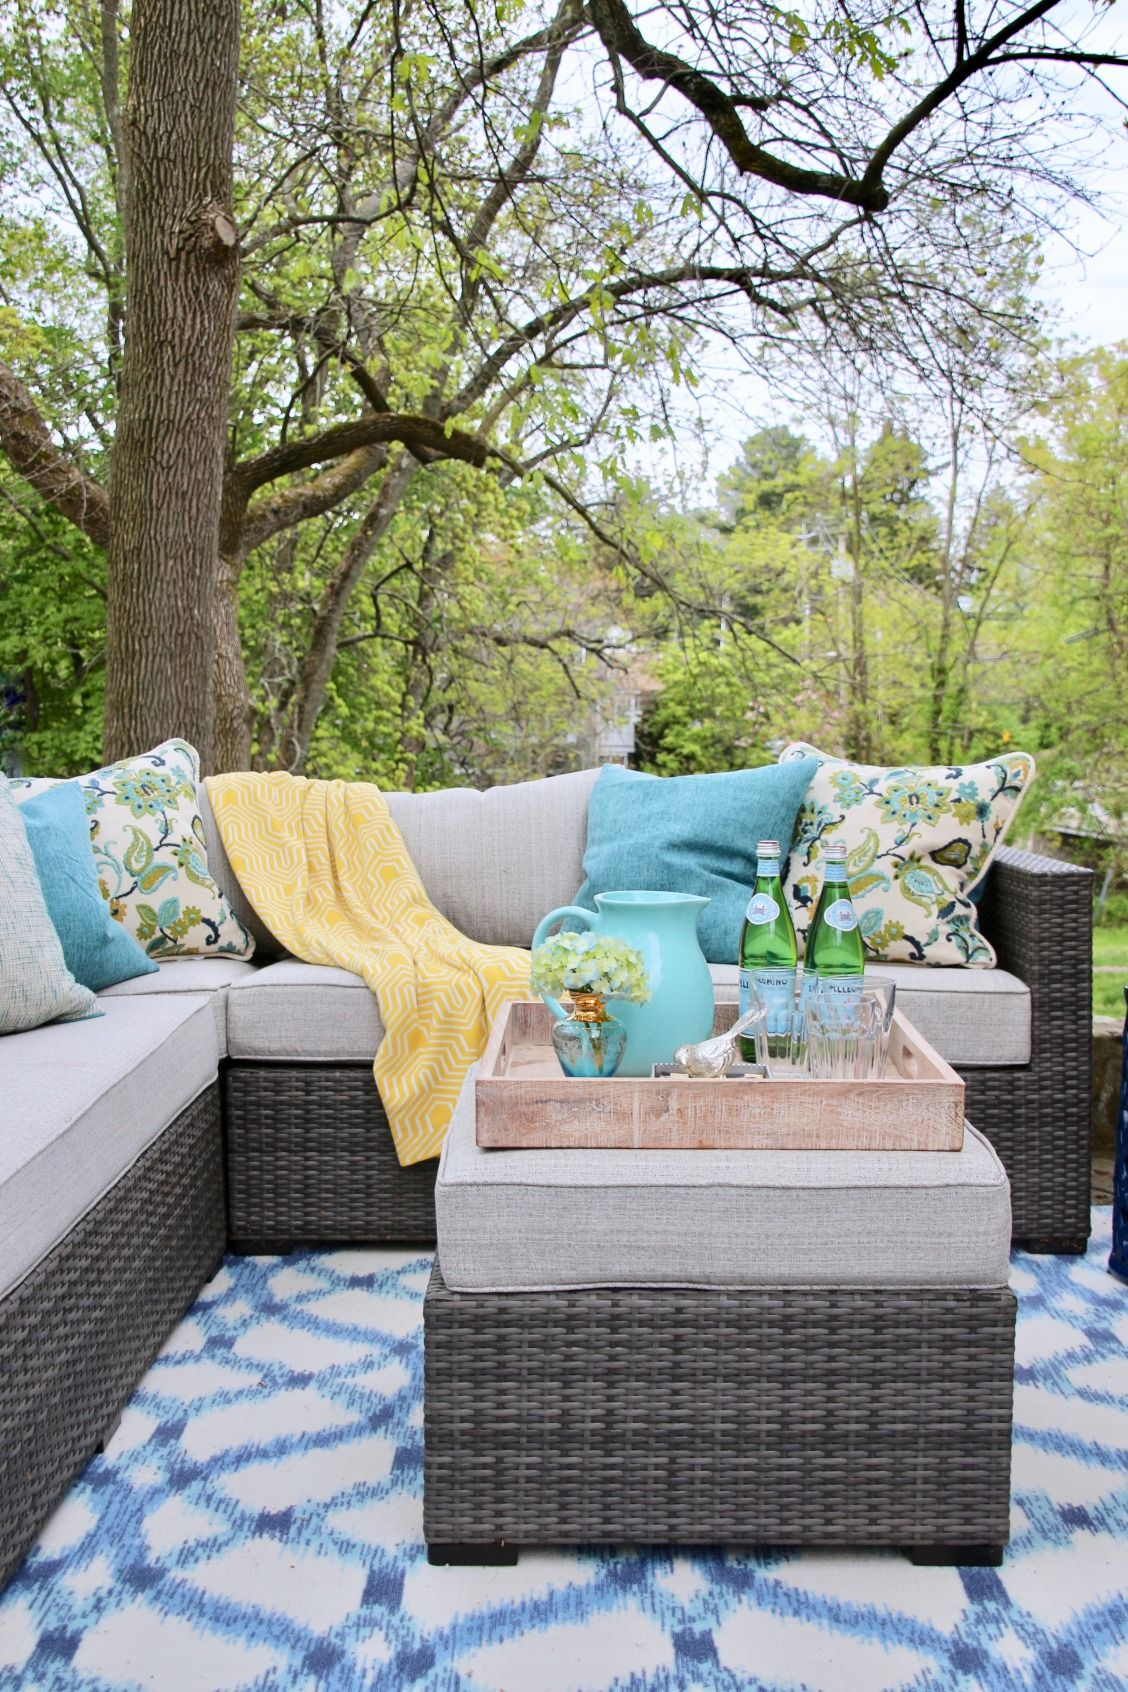 If You Need Furniture For Your Deck Or Patio You Ll Find It All At Raymour Flanigan We Have Out Outdoor Patio Furniture Outdoor Living Outdoor Living Space